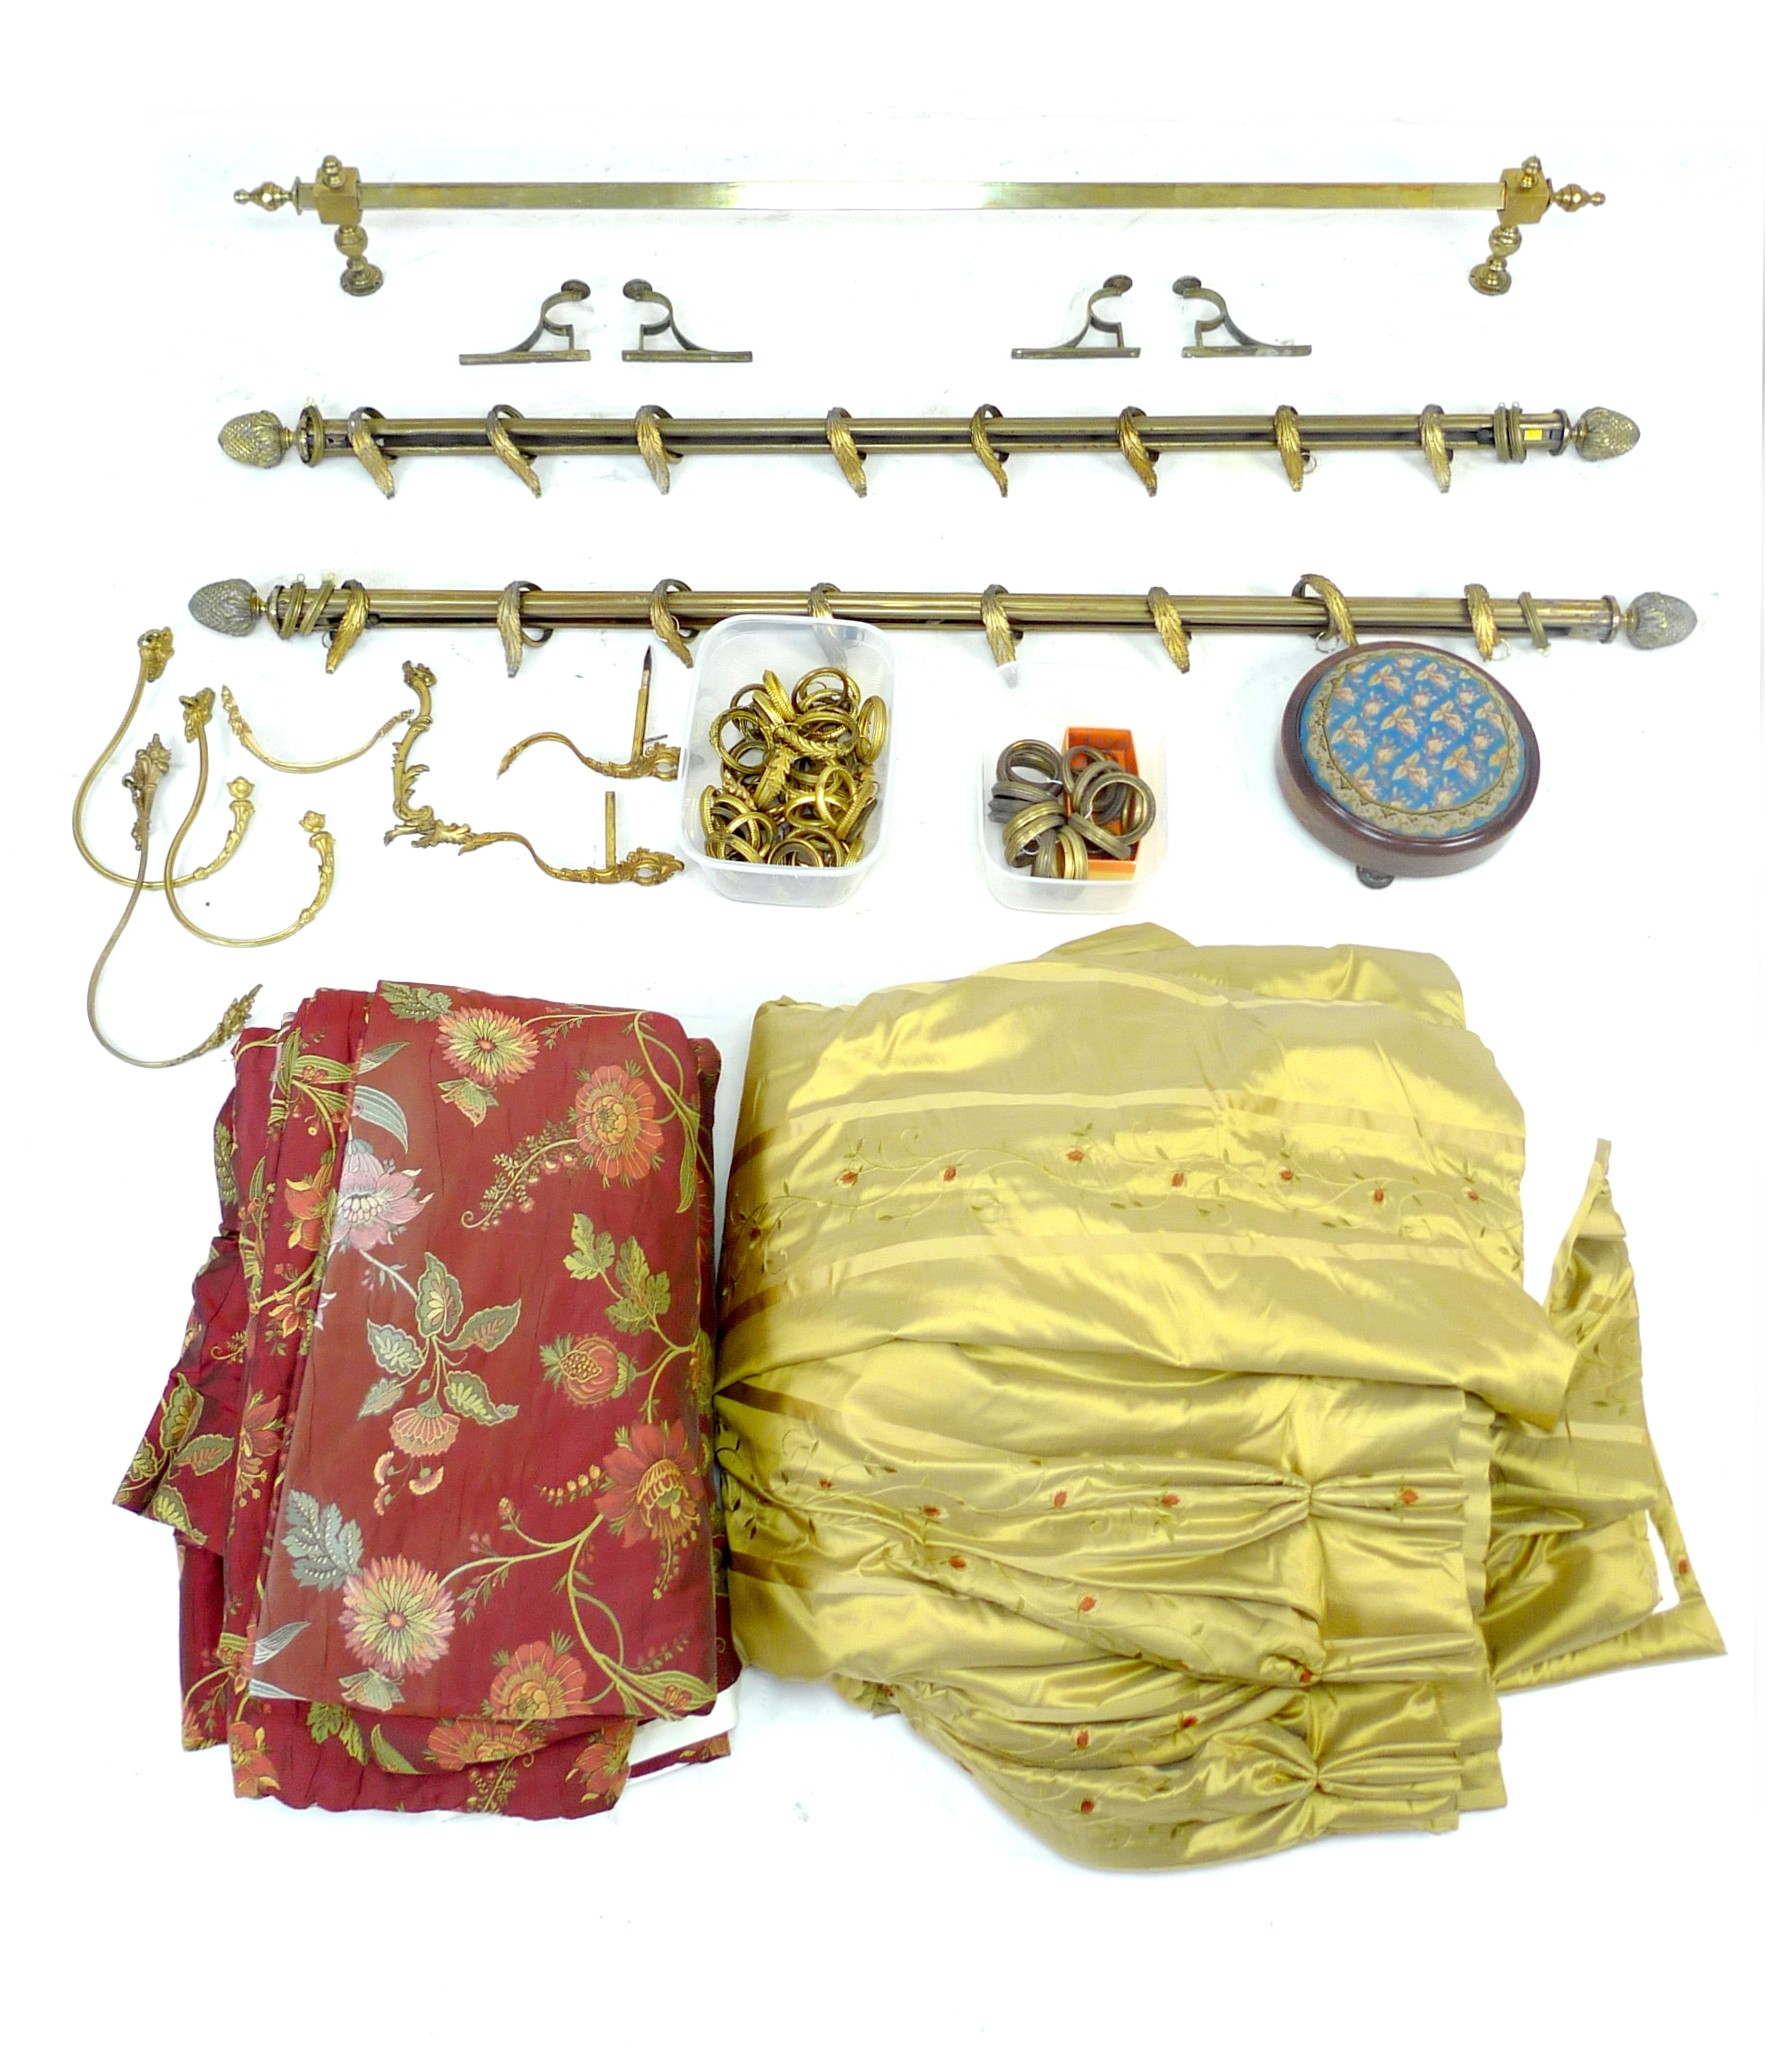 A group of brass curtain rails and curtains, including a pair of rails with pineapple finials and